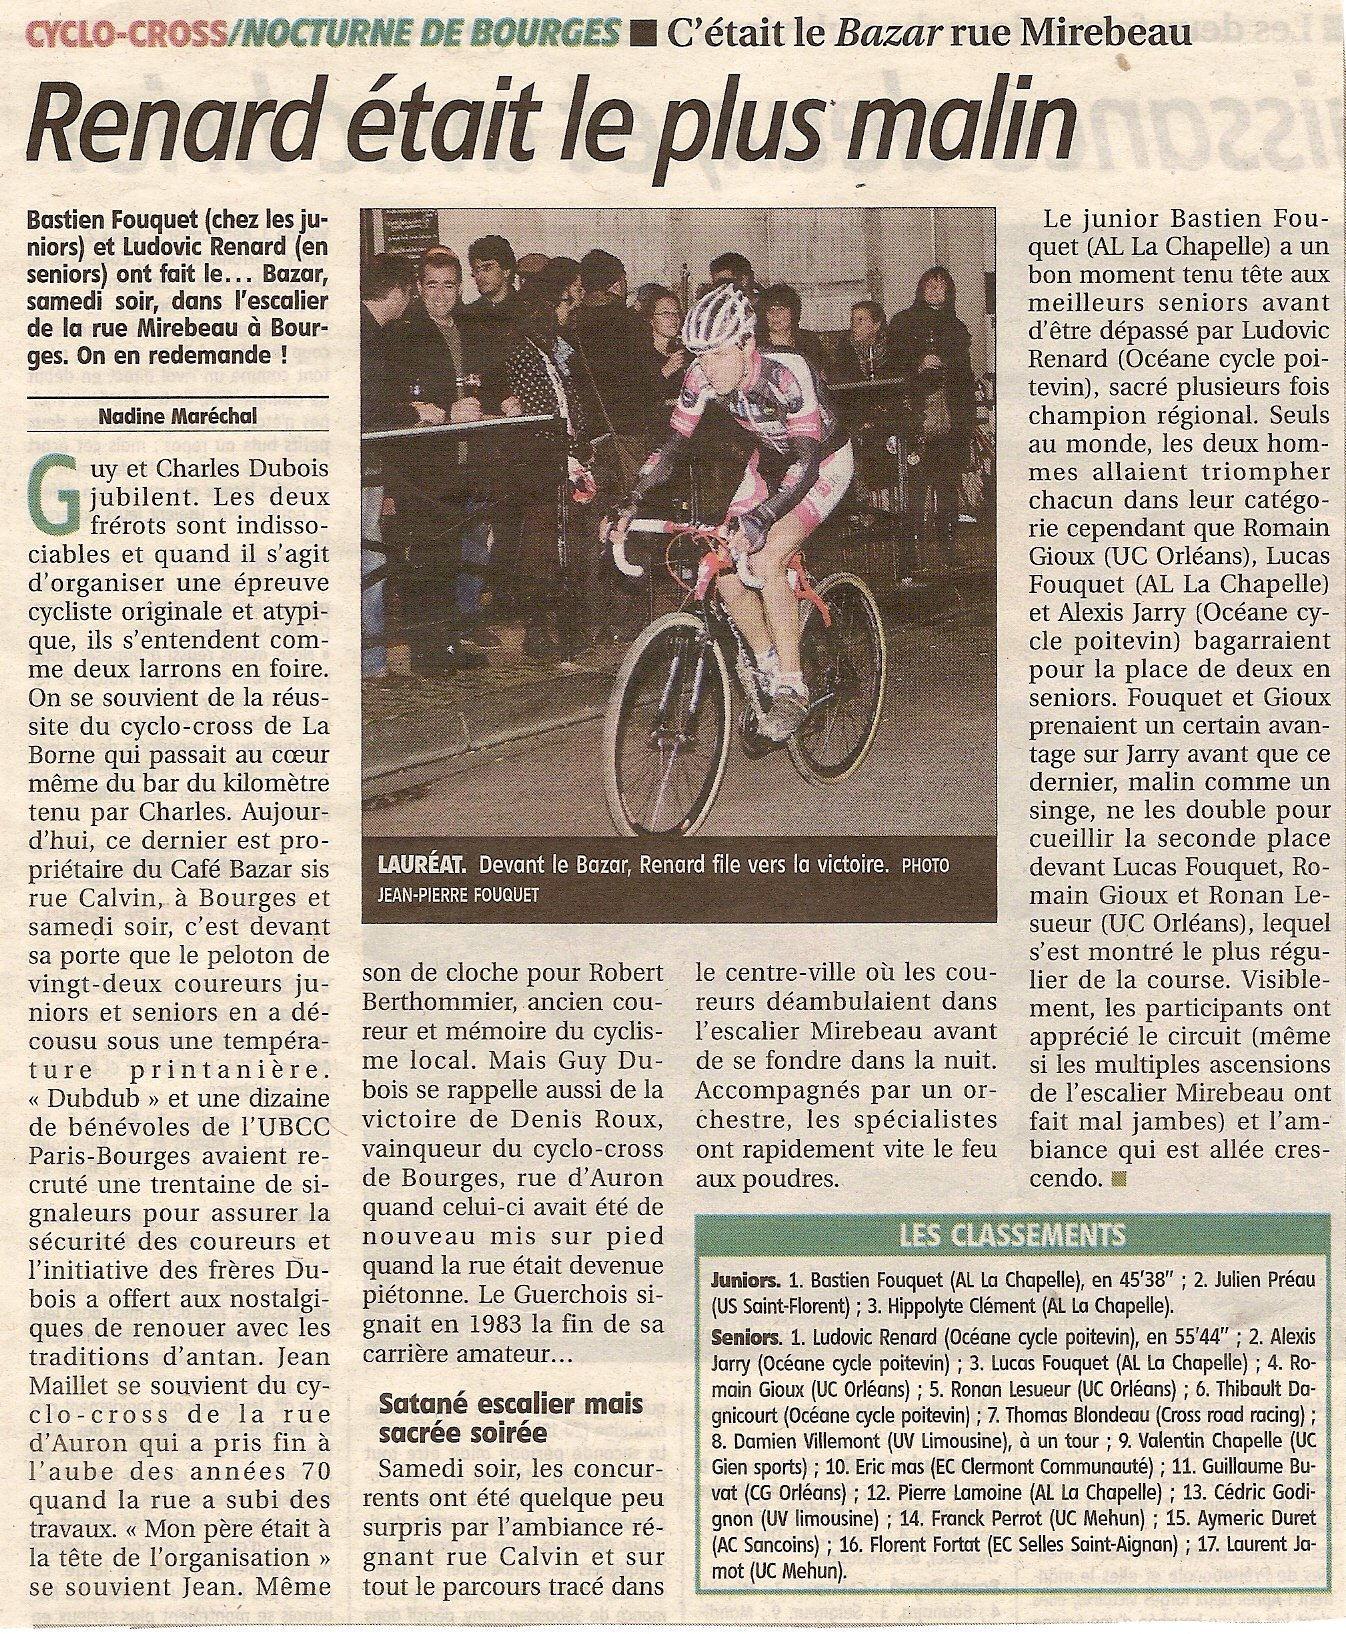 cyclocrossbourges.jpg